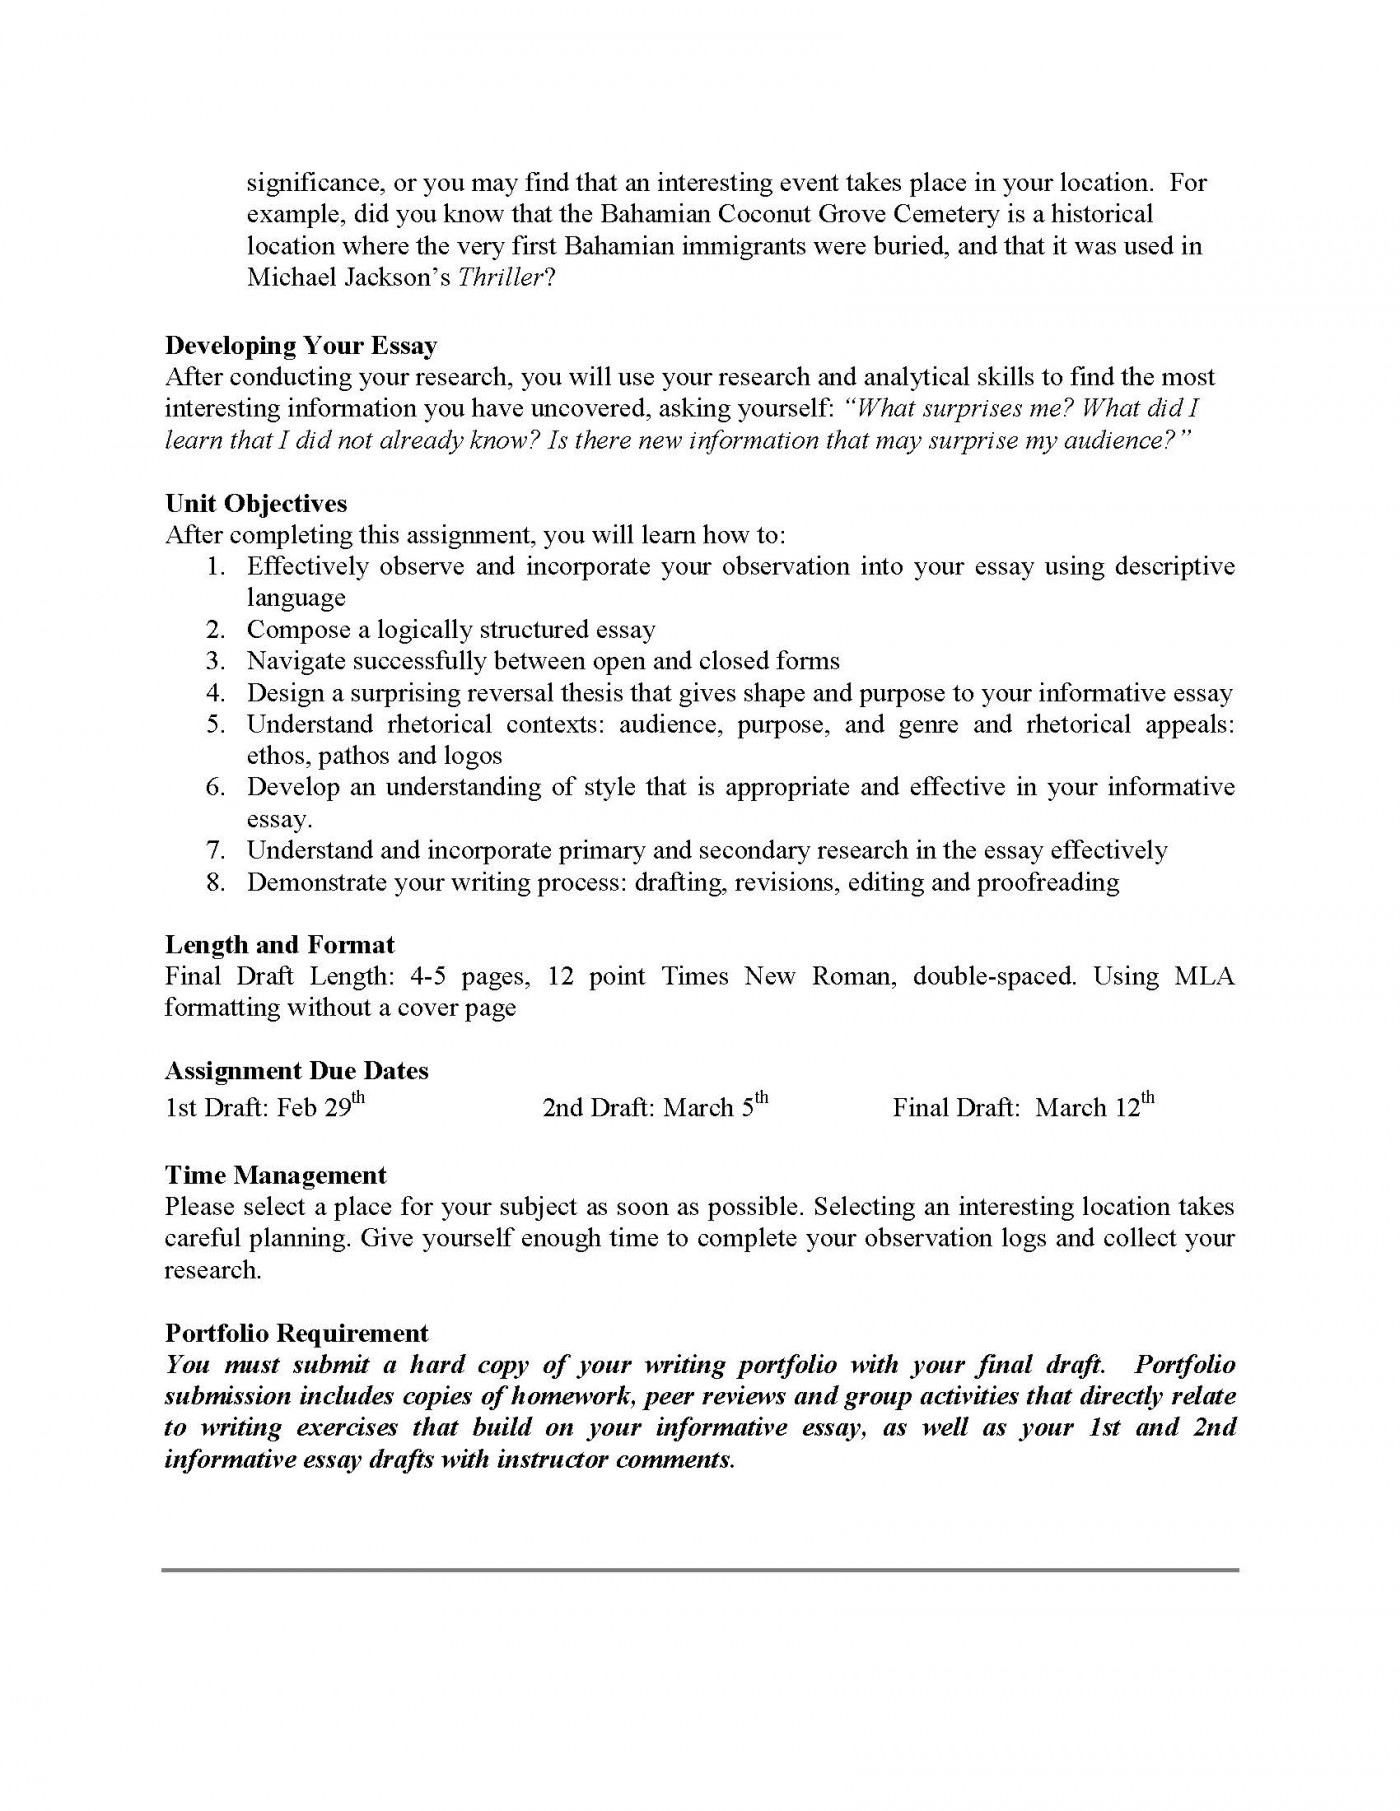 014 Informative Essay Unit Assignment Page 2 Dreaded Graphic Organizer Prompts Middle School 3rd Grade 1400